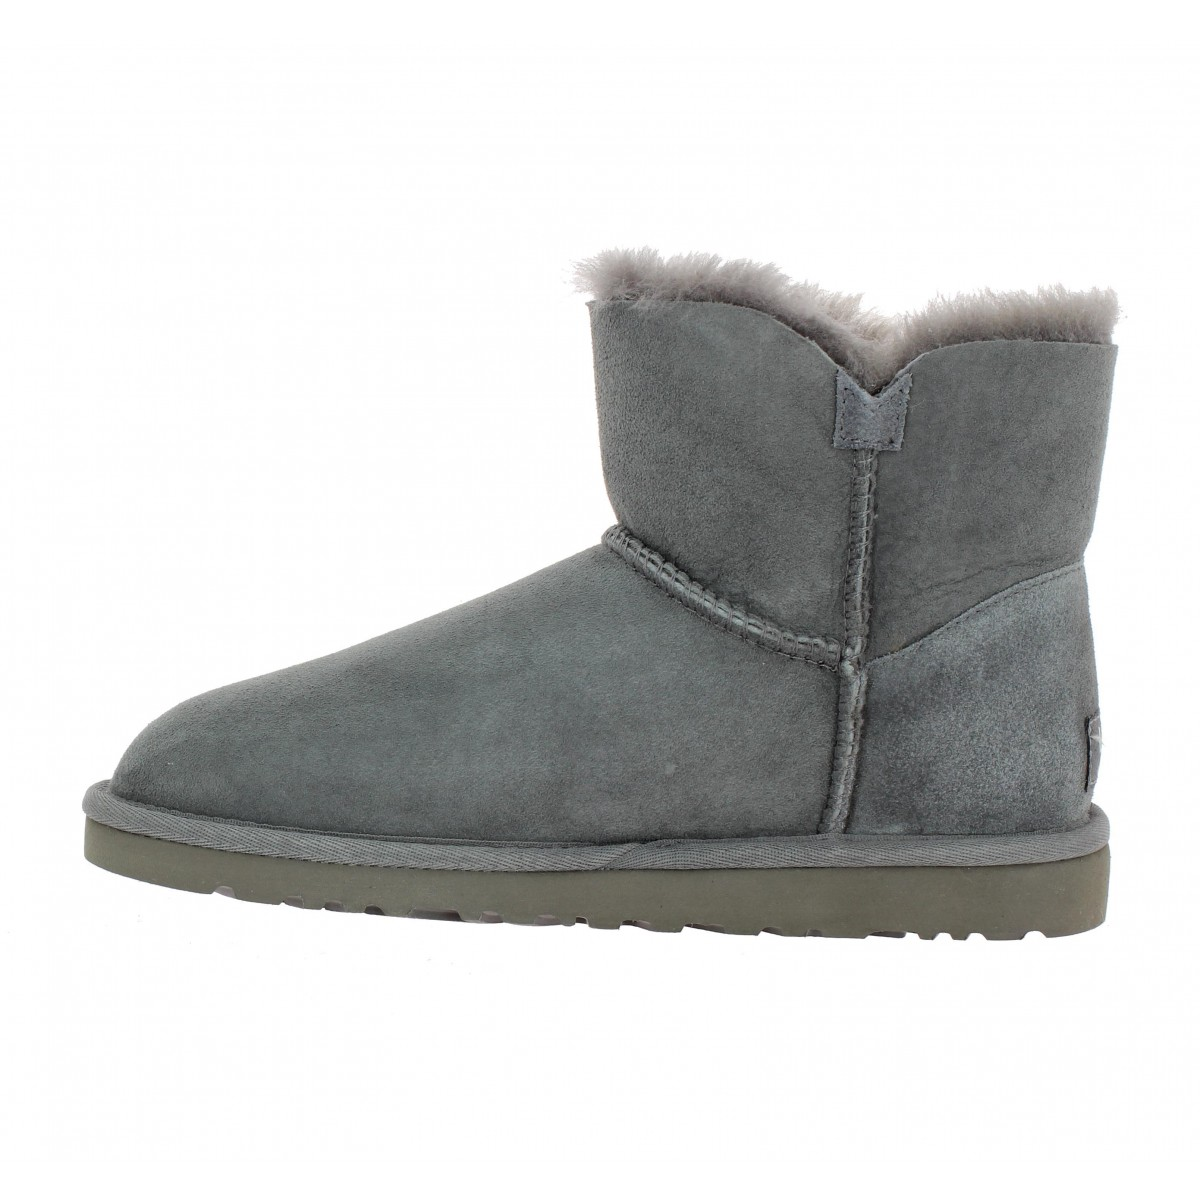 bailey button uggs sale uk